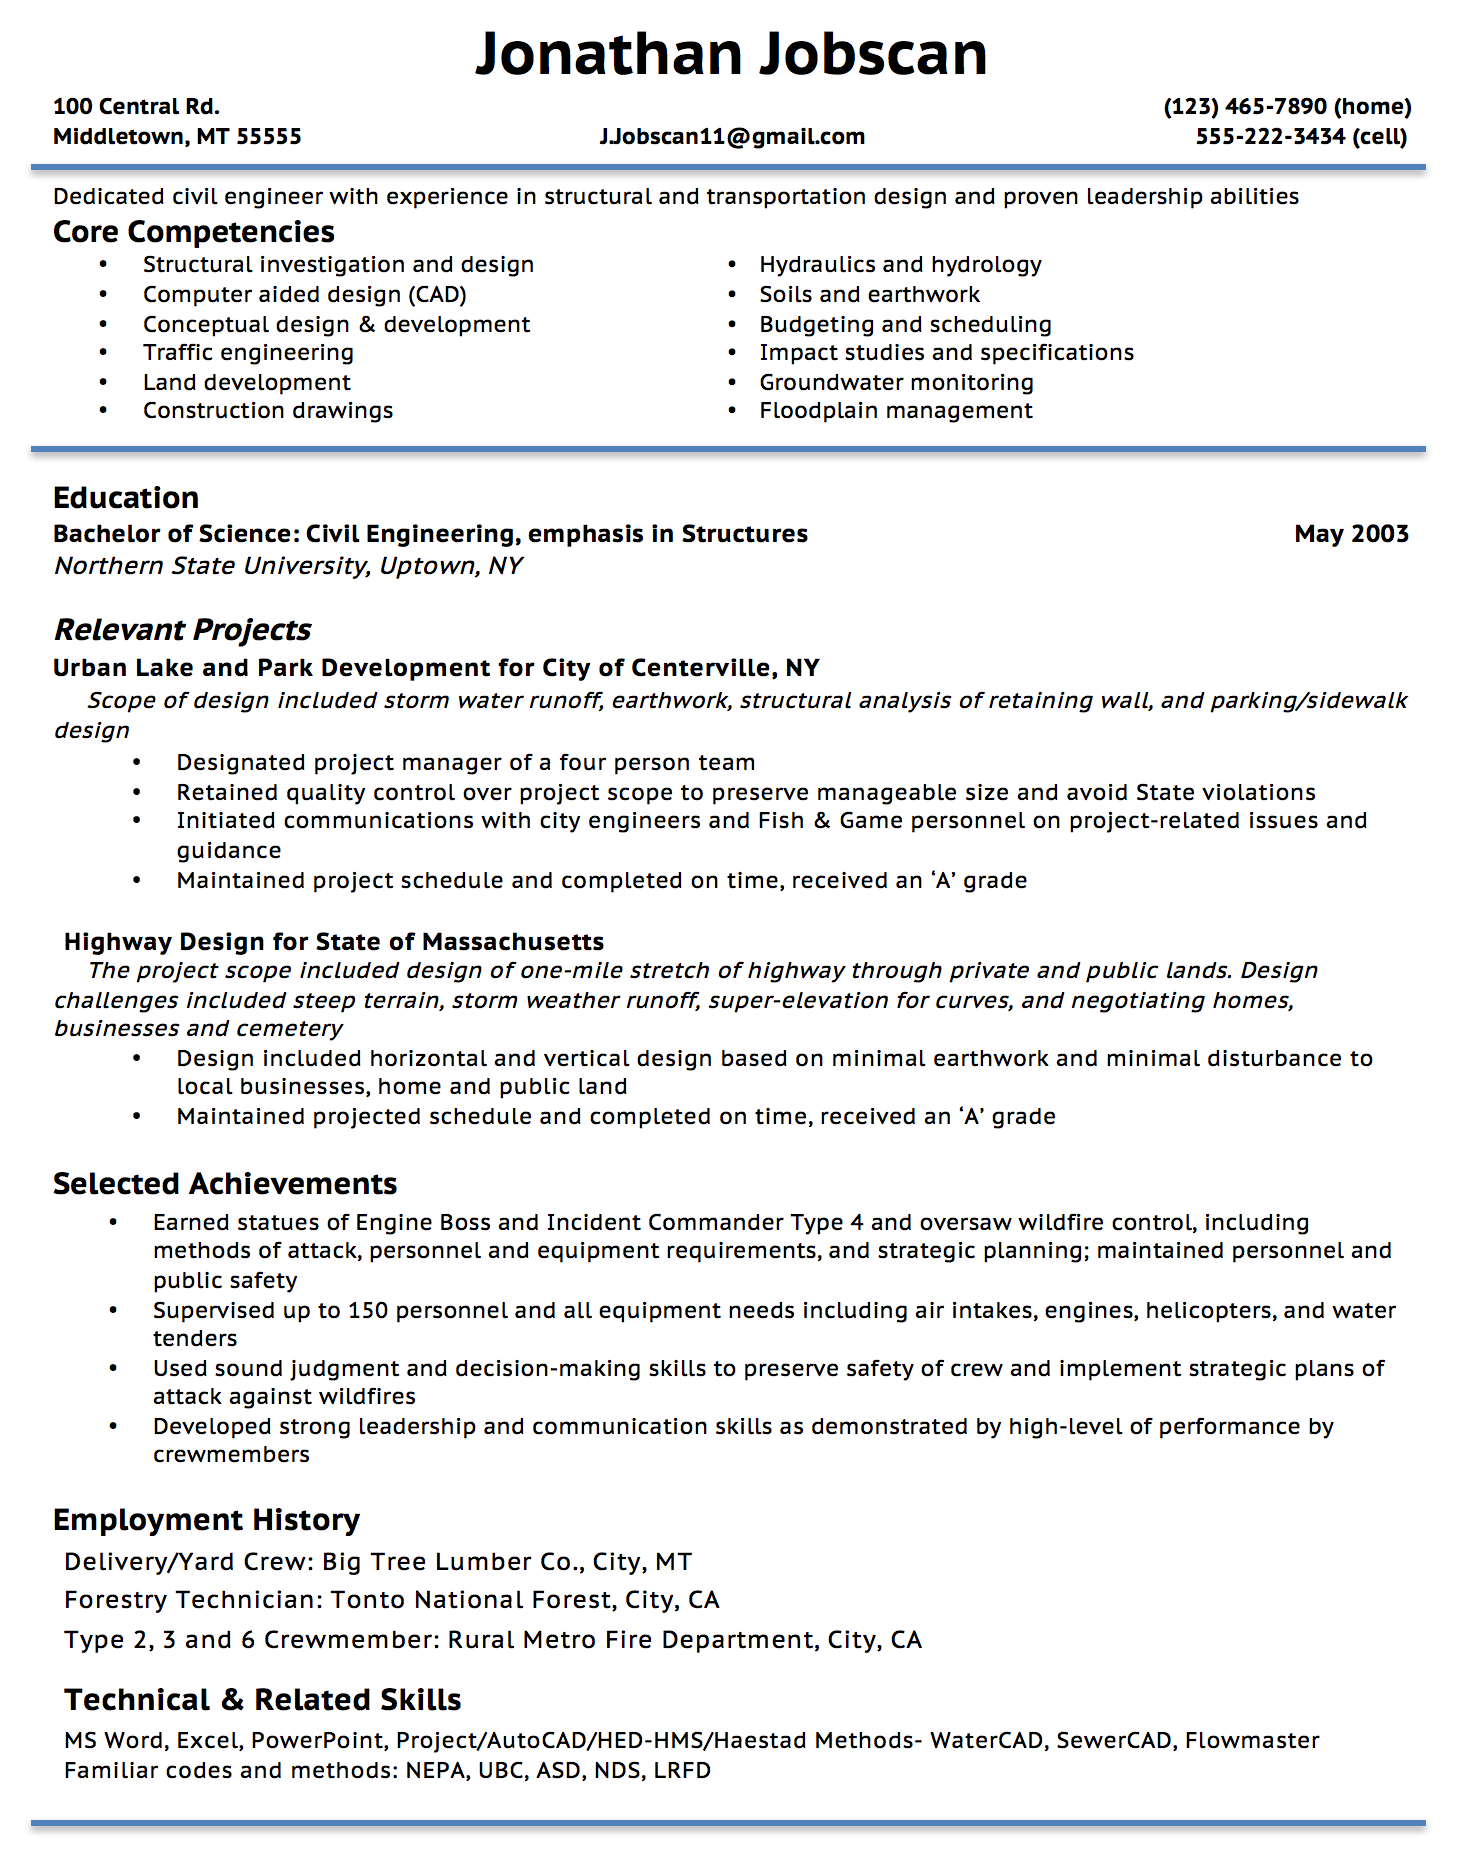 Opposenewapstandardsus  Pleasant Resume Writing Guide  Jobscan With Goodlooking Example Of A Functional Resume Format With Cute Writing Skills On Resume Also The Resume In Addition Business Owner Resume Sample And Resume Doctor As Well As Restaurant Resume Objective Additionally Download Resume Templates Free From Jobscanco With Opposenewapstandardsus  Goodlooking Resume Writing Guide  Jobscan With Cute Example Of A Functional Resume Format And Pleasant Writing Skills On Resume Also The Resume In Addition Business Owner Resume Sample From Jobscanco